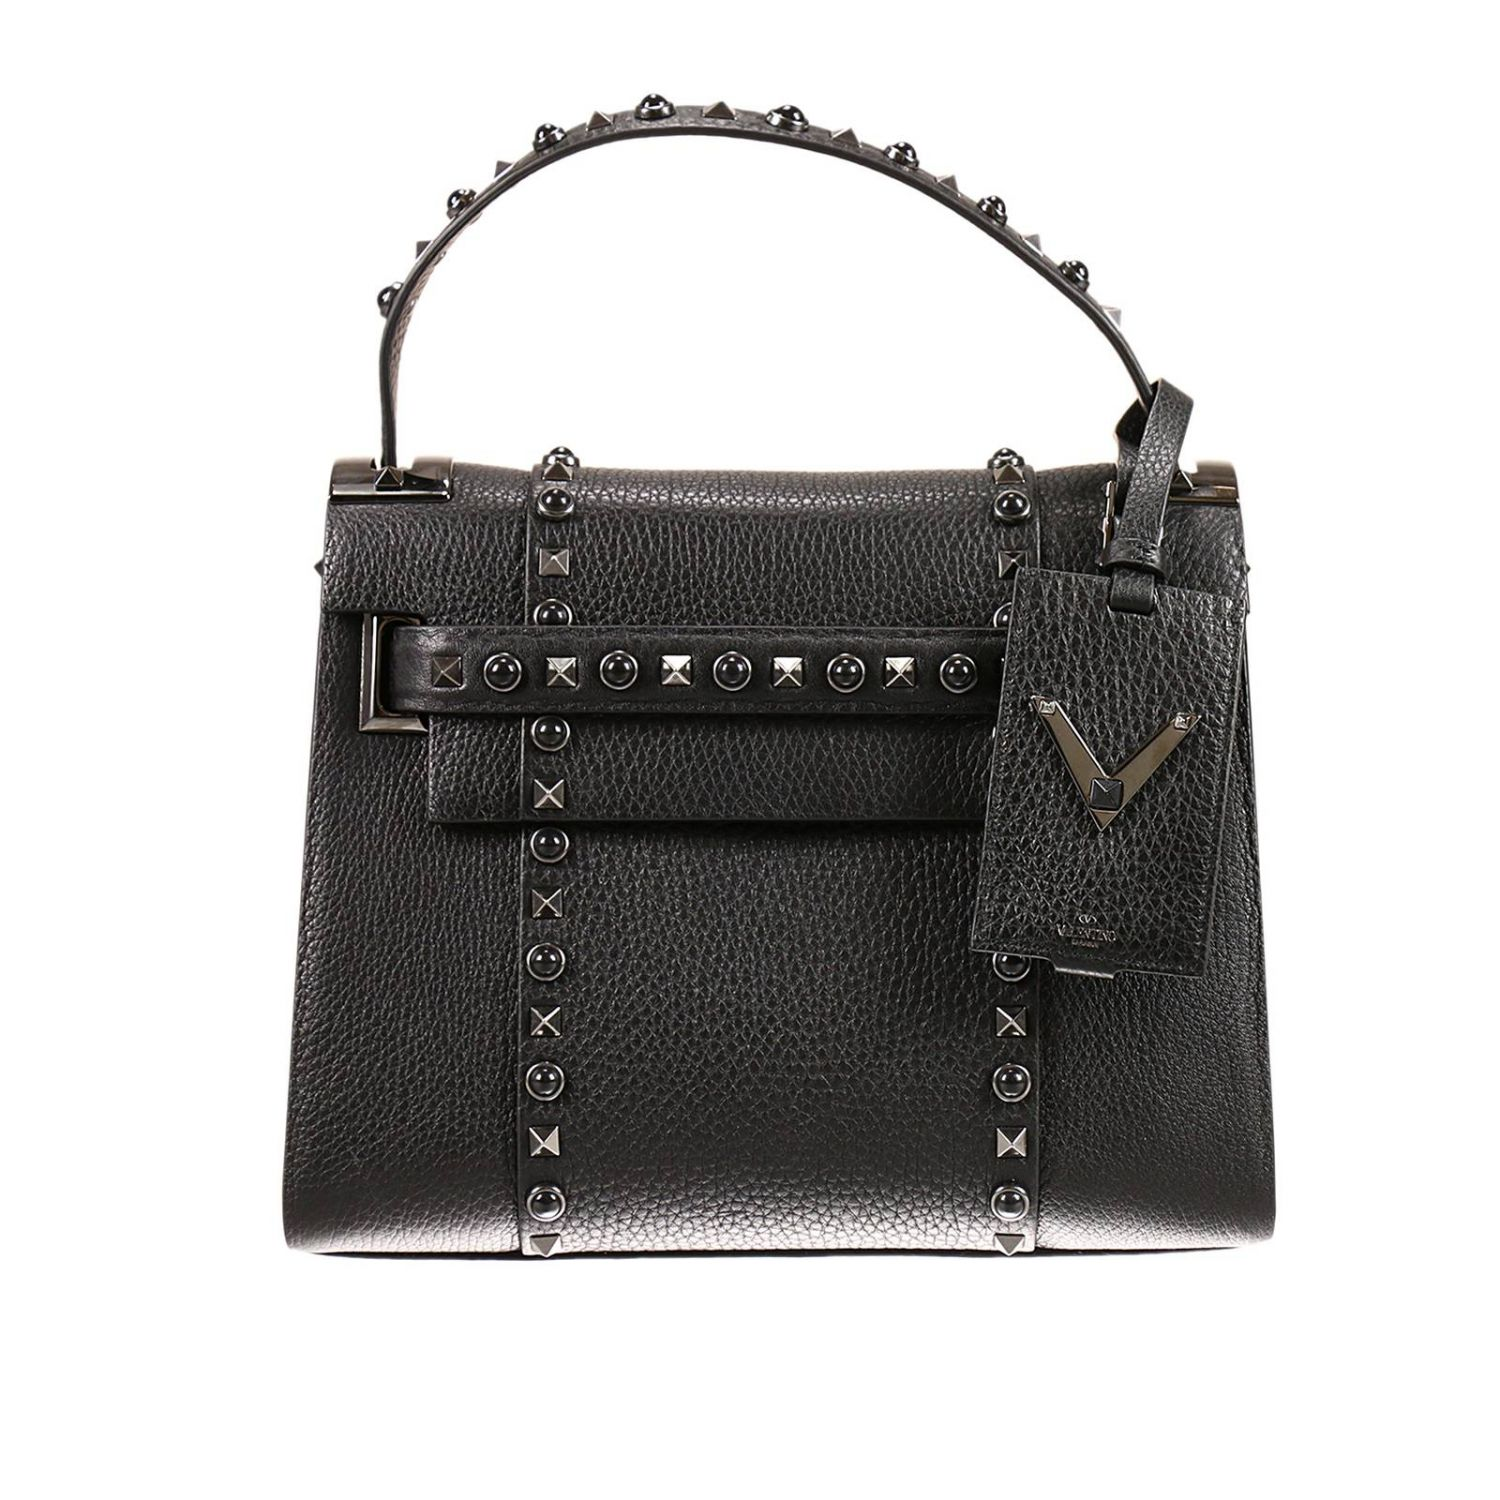 Tote Bags My Rockstud 1 Handle In Hammered Leather Bag With Studs And Stones 8109080